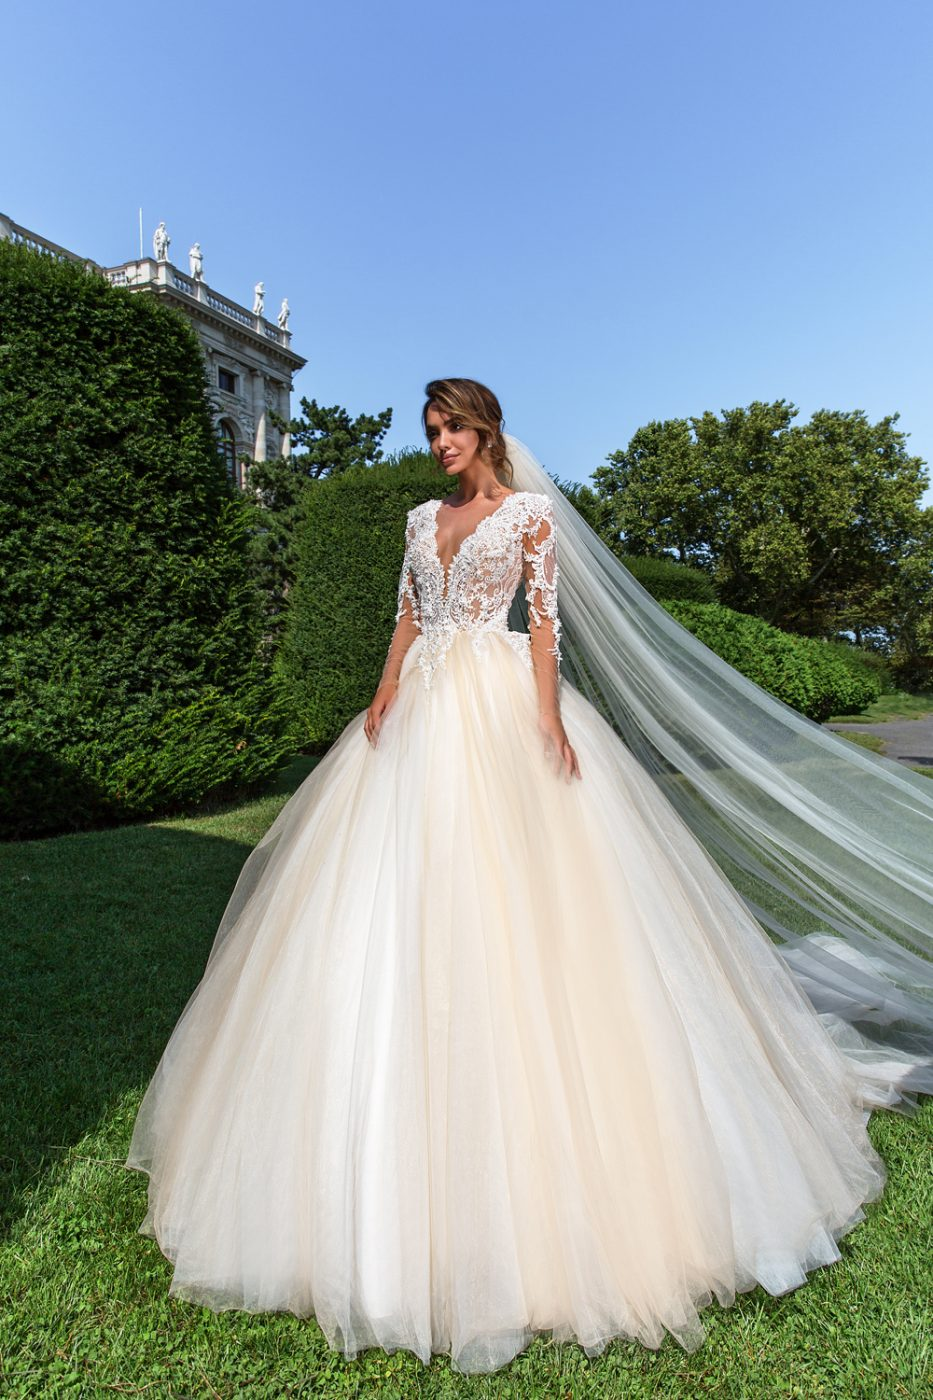 illusion sleeve v neck ball gown by Crystal Design Couture